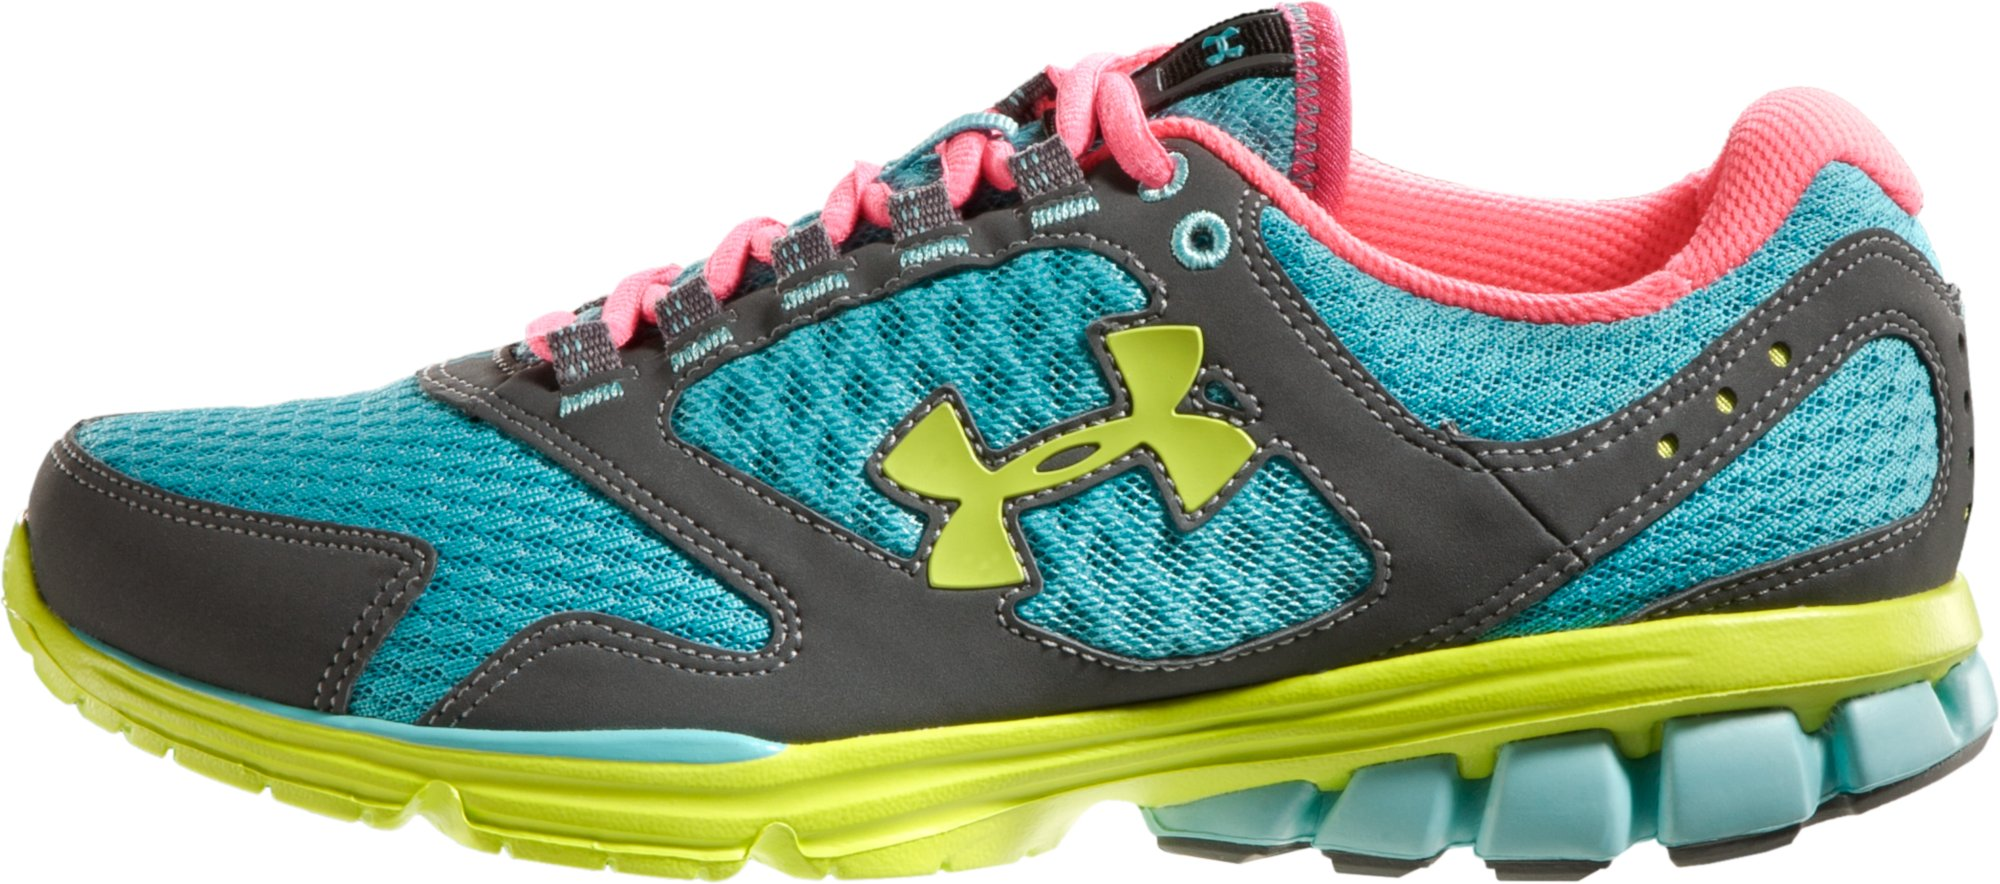 Womens Running Shoes In Wide 72